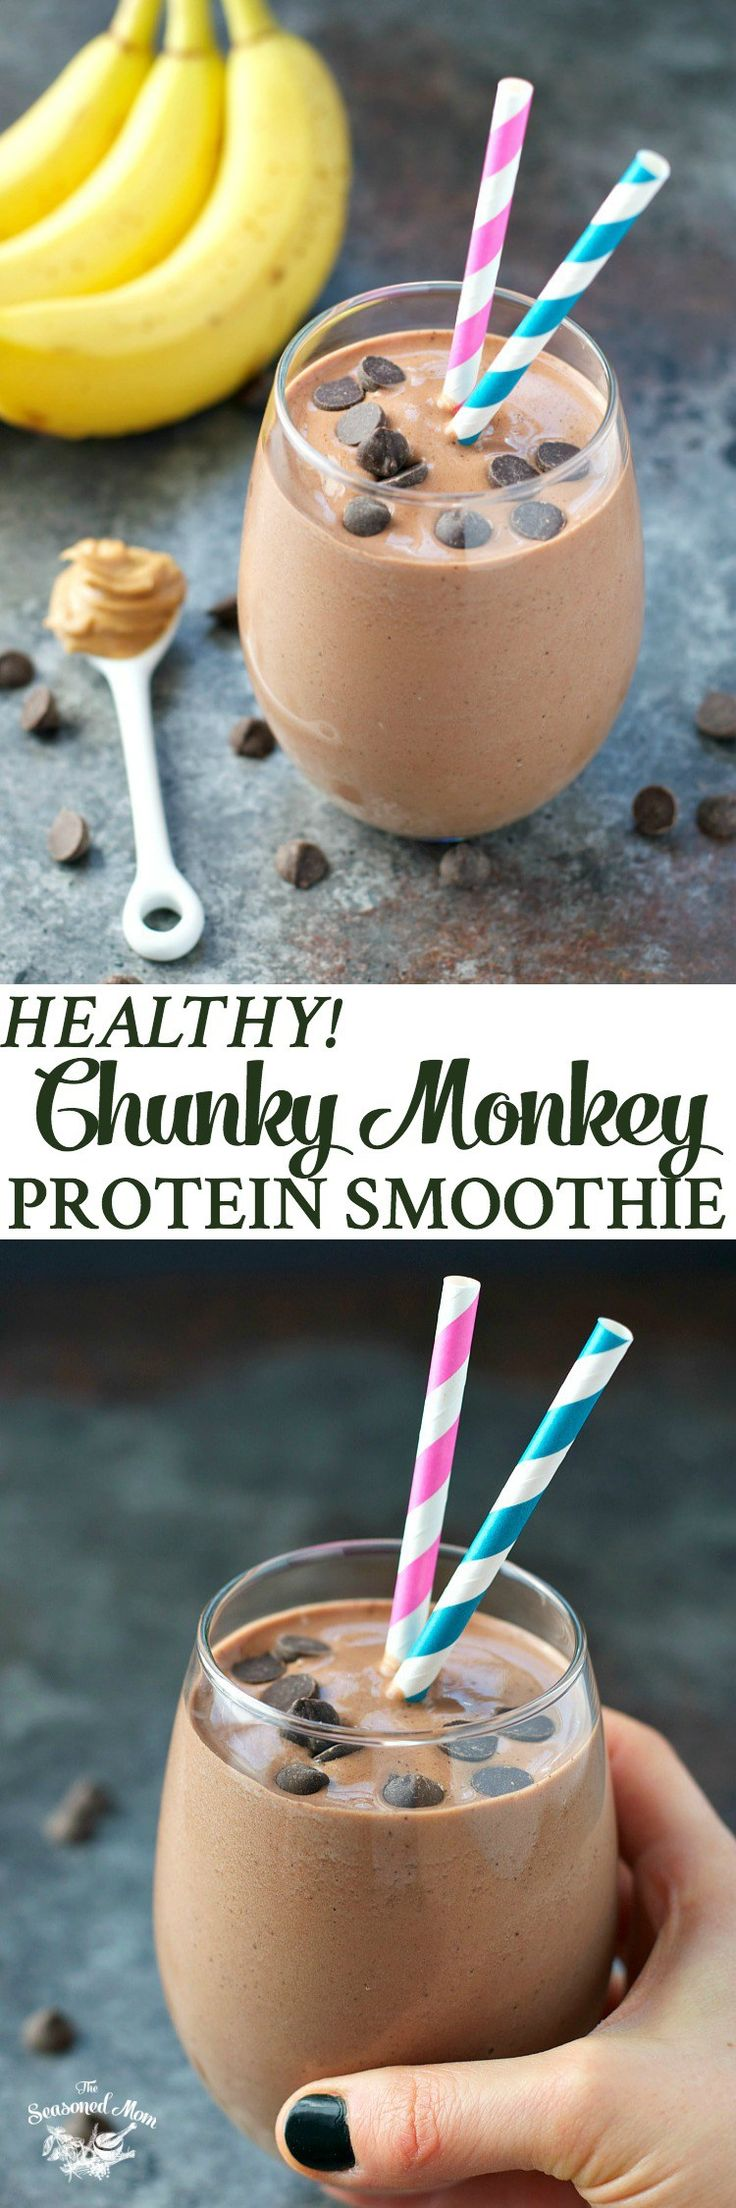 A healthy, high protein breakfast is less than 5 minutes away with this Chunky Monkey Protein Smoothie! Dairy-free, gluten-free, vegan, too!